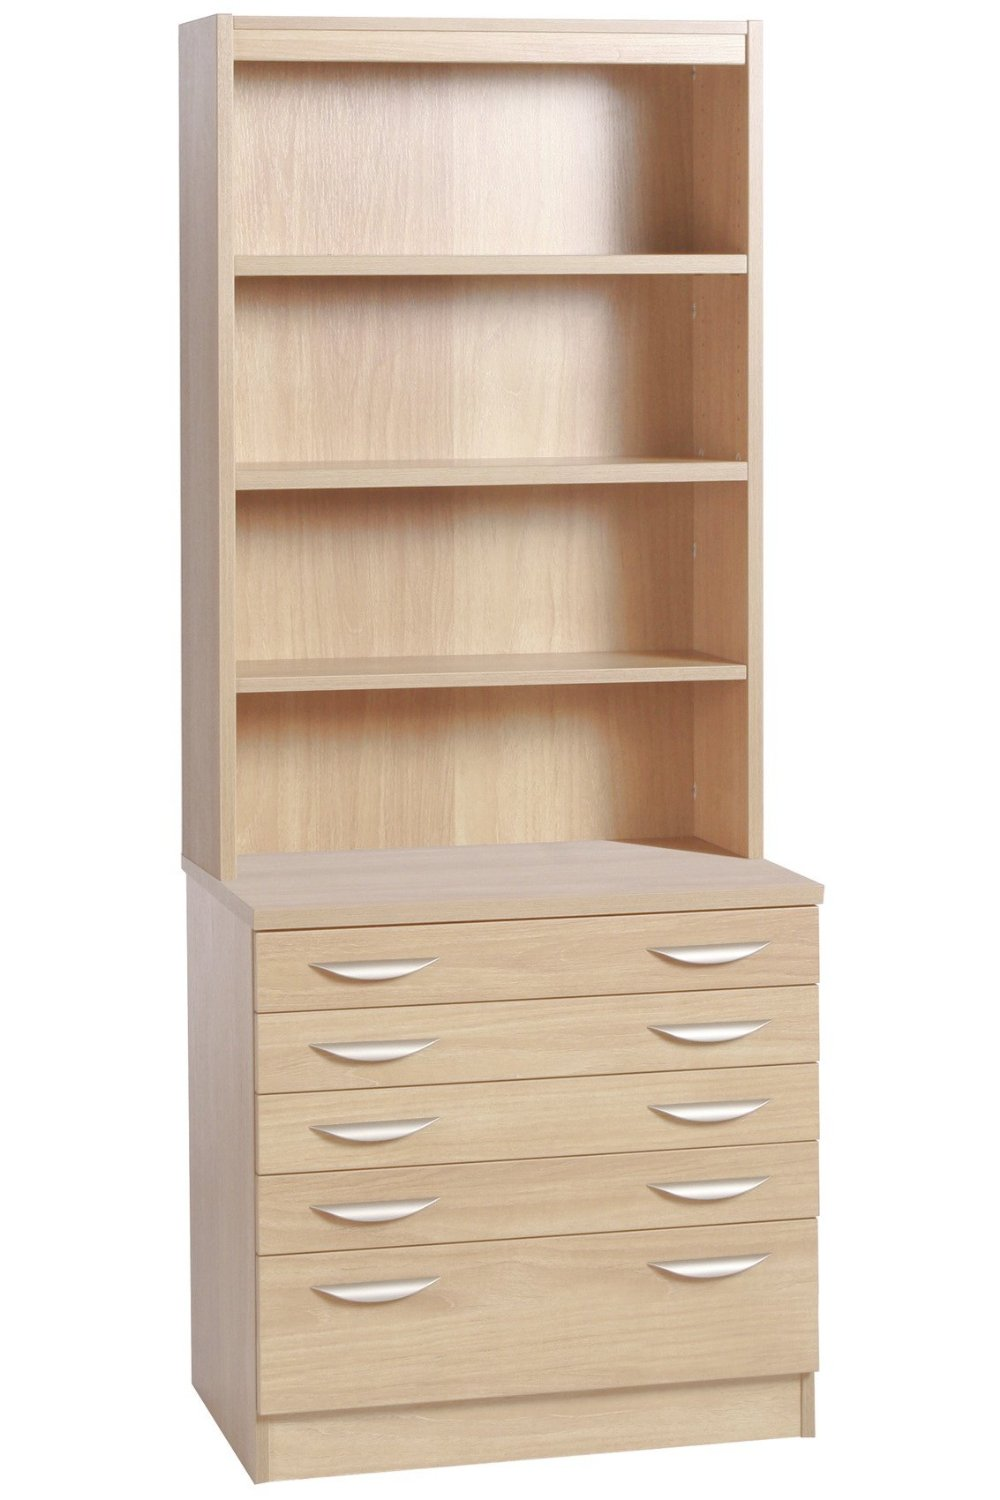 A2 PLAN CHEST WITH DEEP LOWER DRAWER AND HUTCH